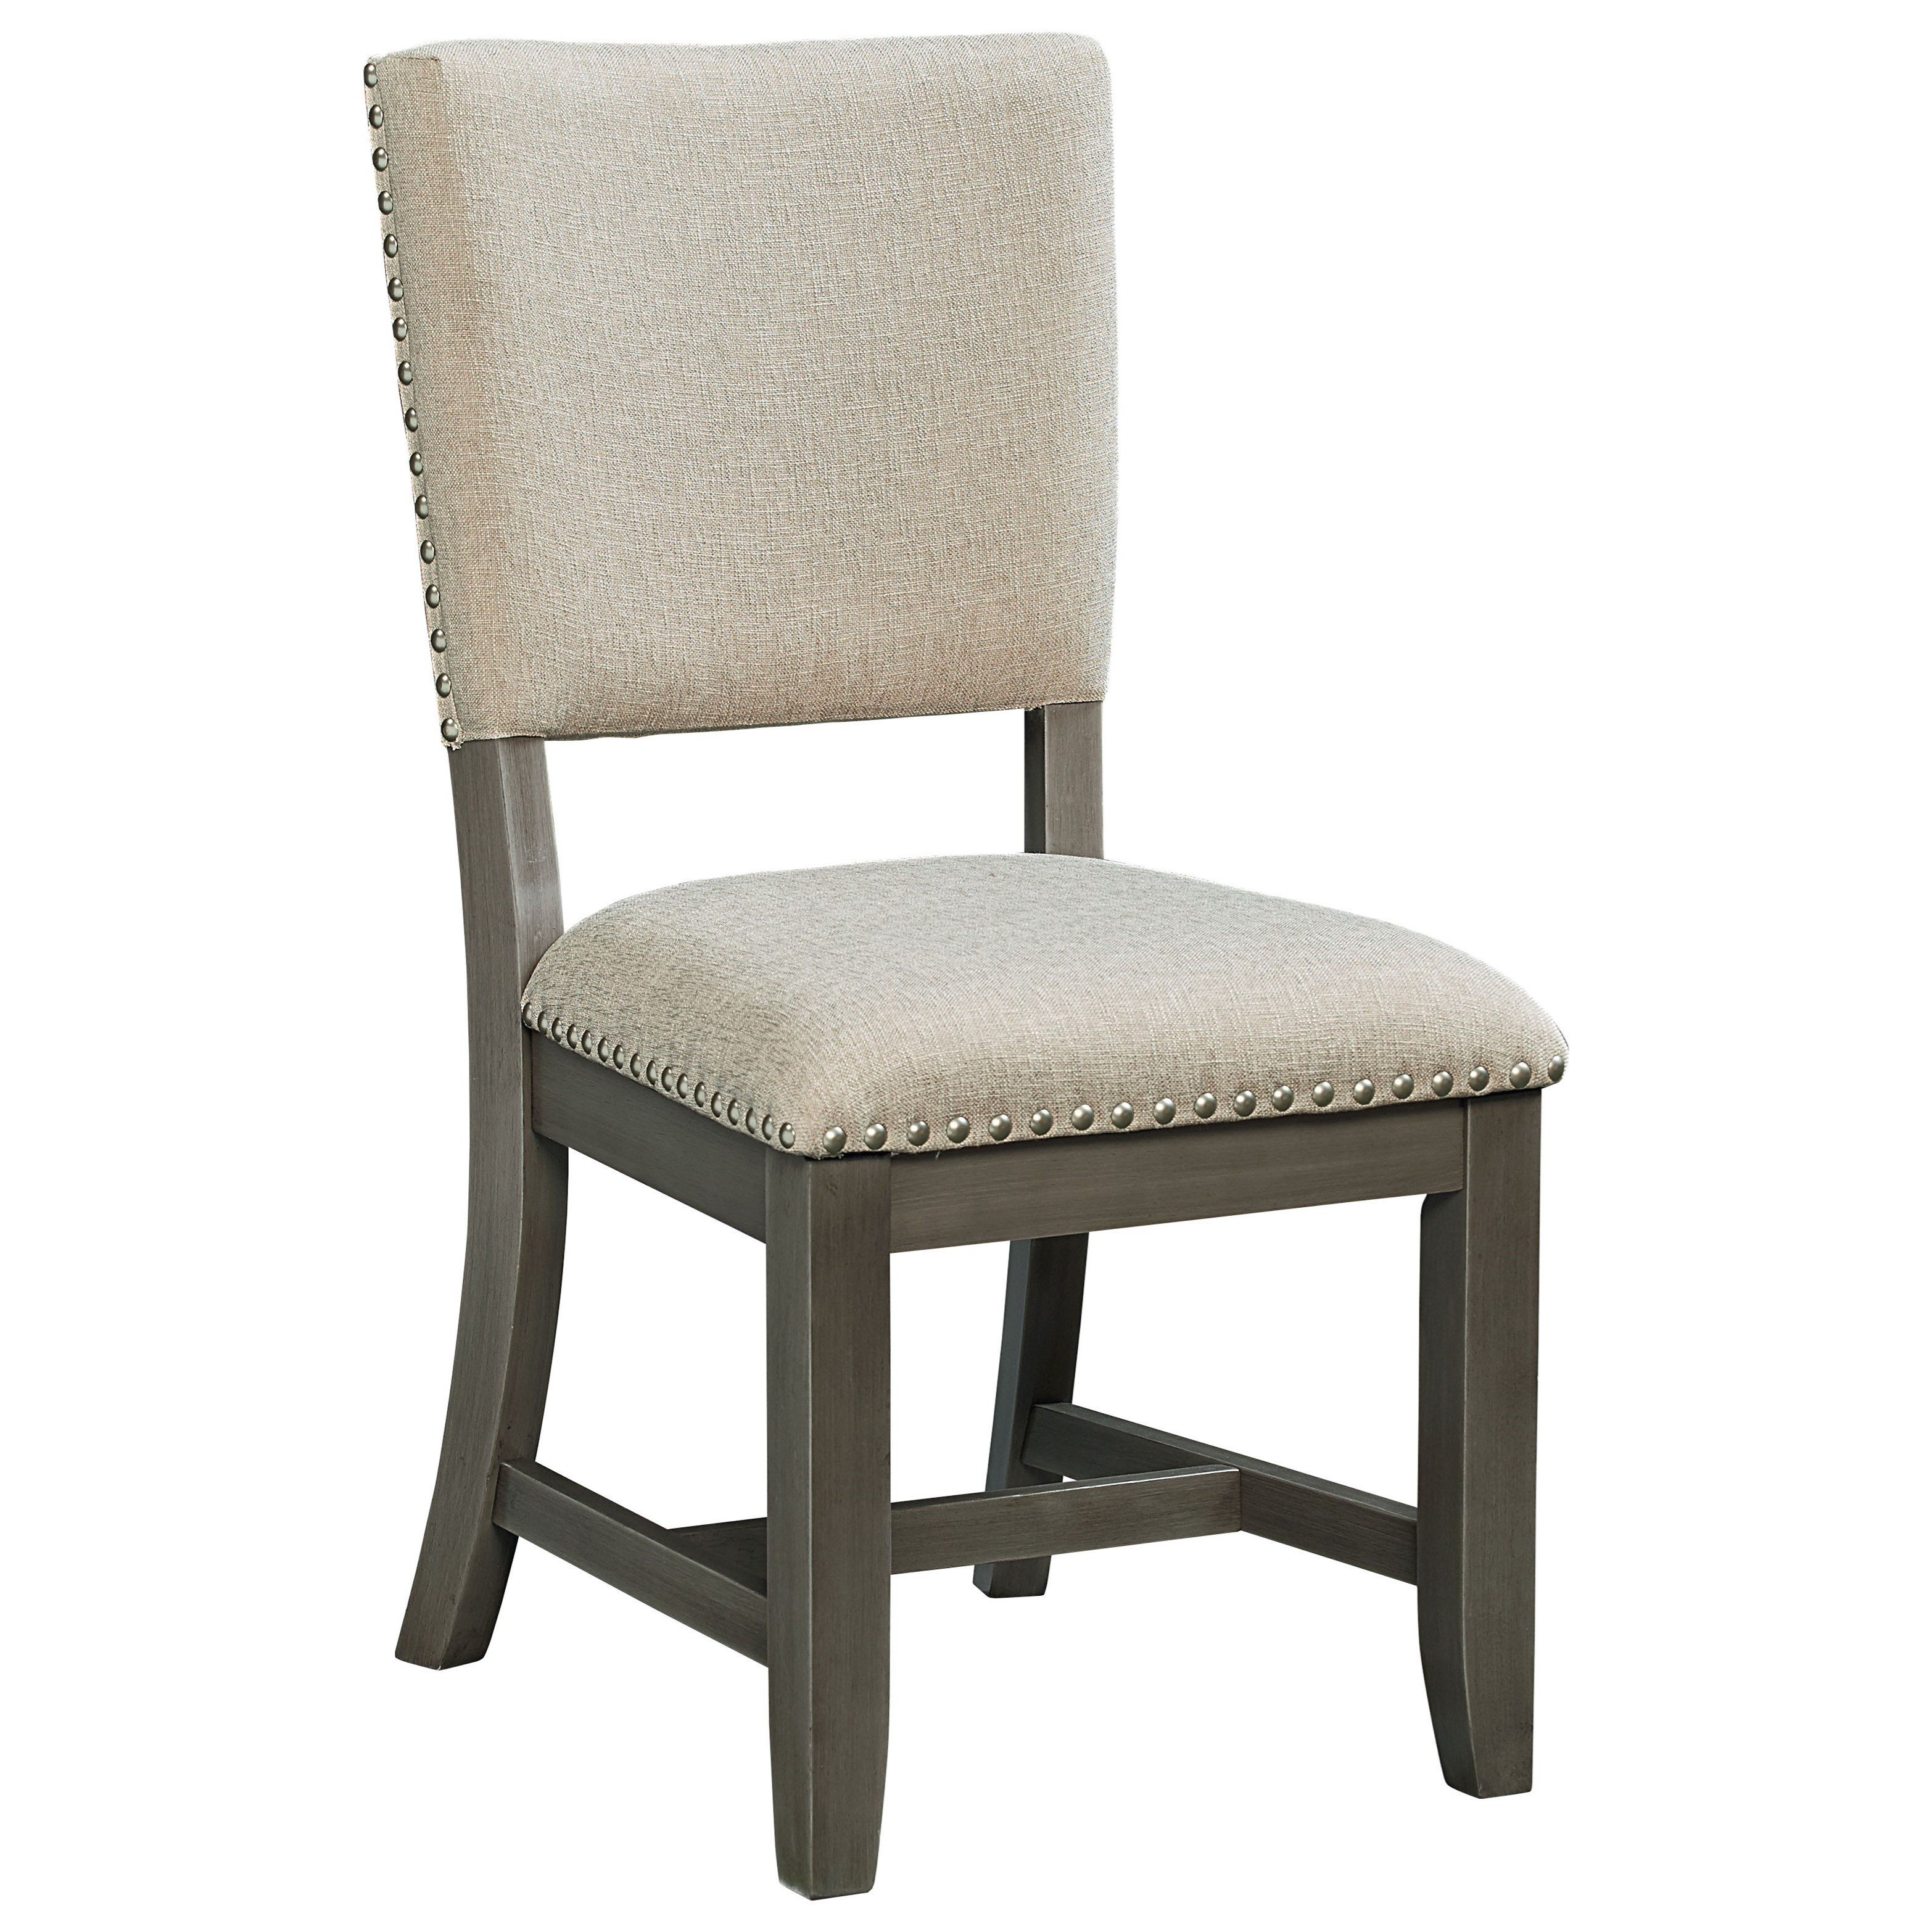 Grey Side Chair Standard Furniture Omaha Grey 16687 Upholstered Side Chair